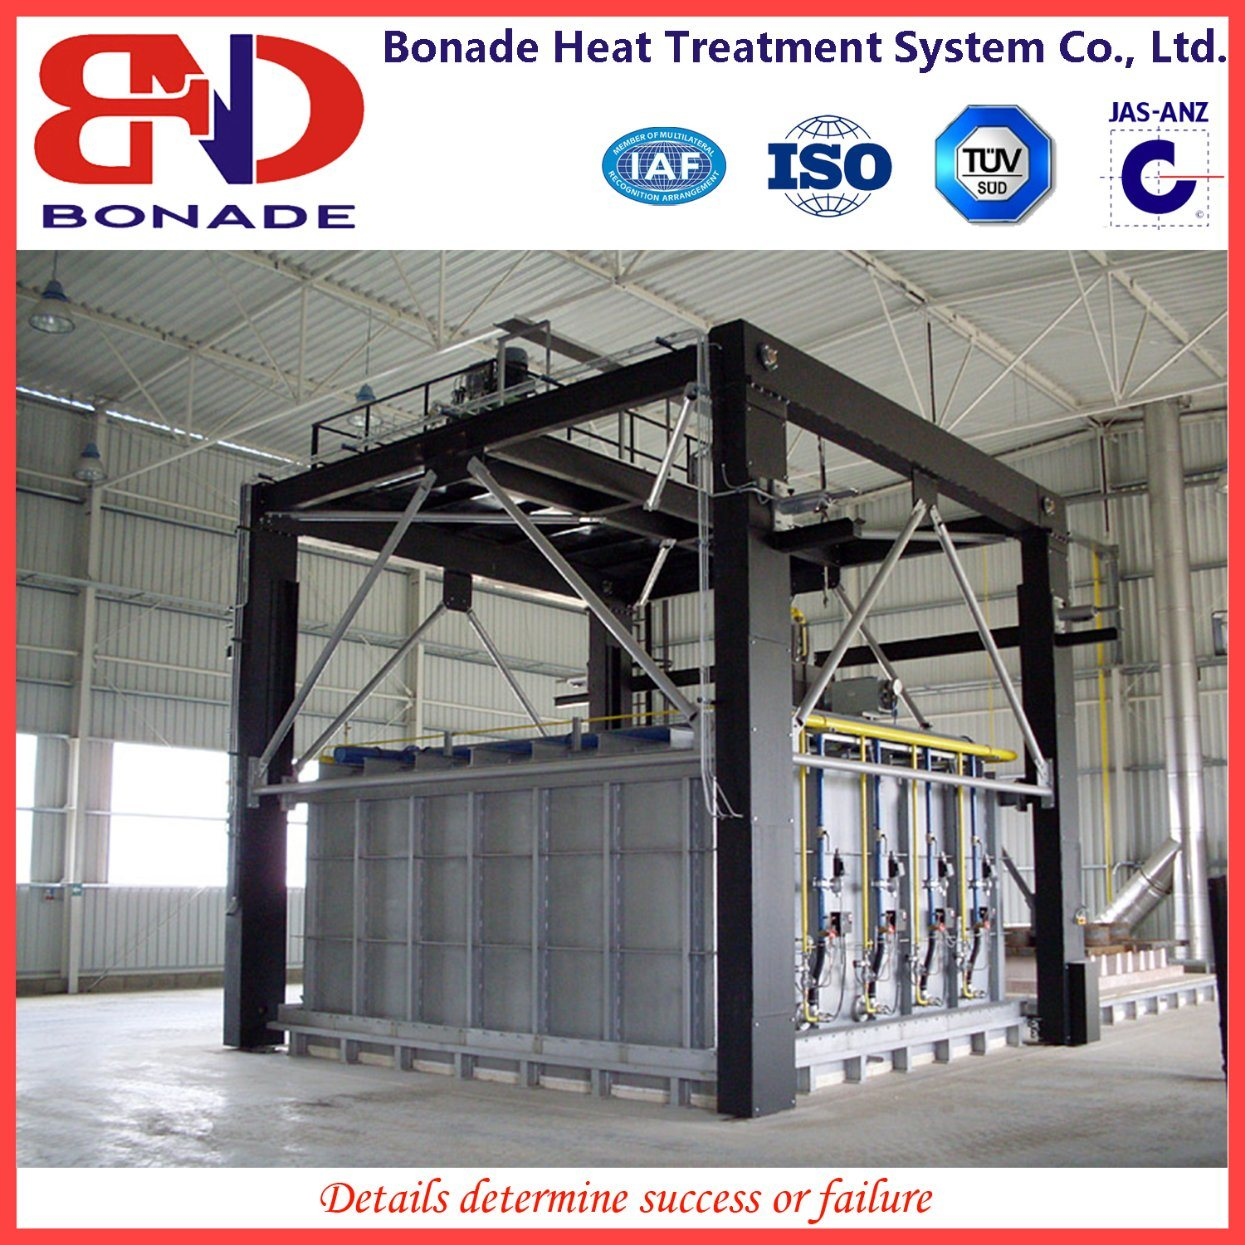 Bell Gas-Fired Furnace for Quenching